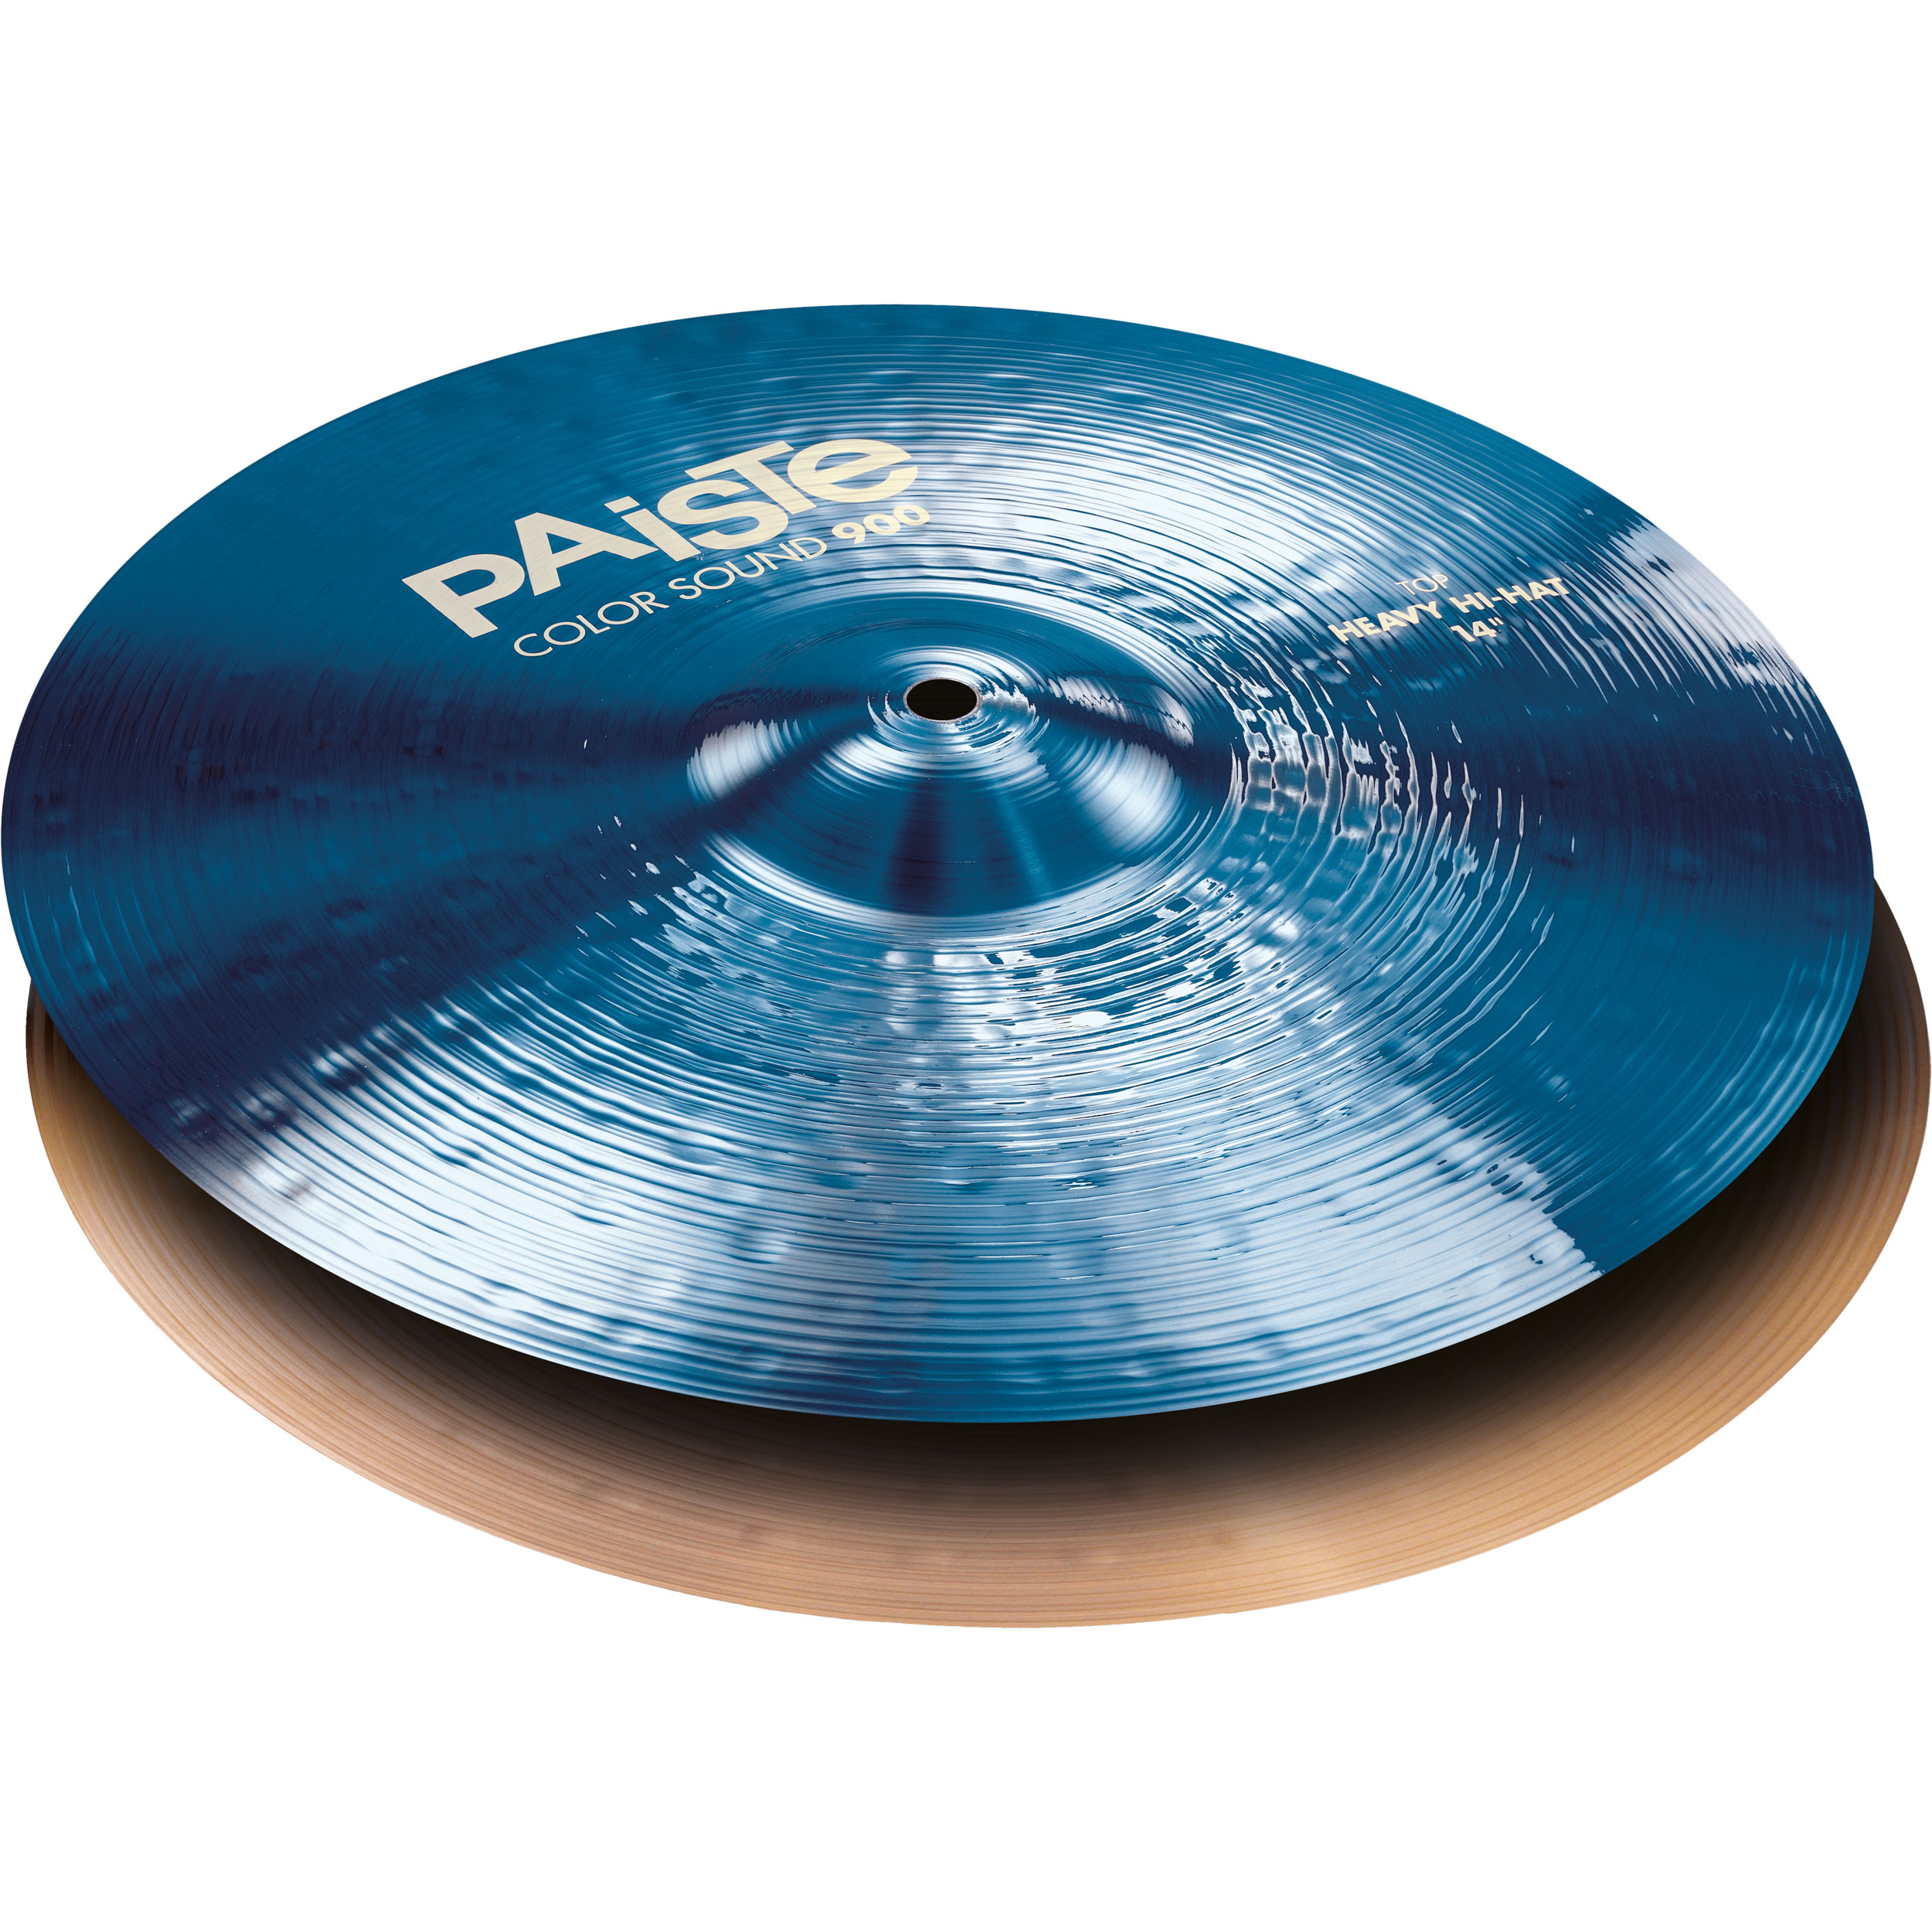 "Paiste 14"" Color Sound 900 Blue Heavy Hi Hat Cymbals"